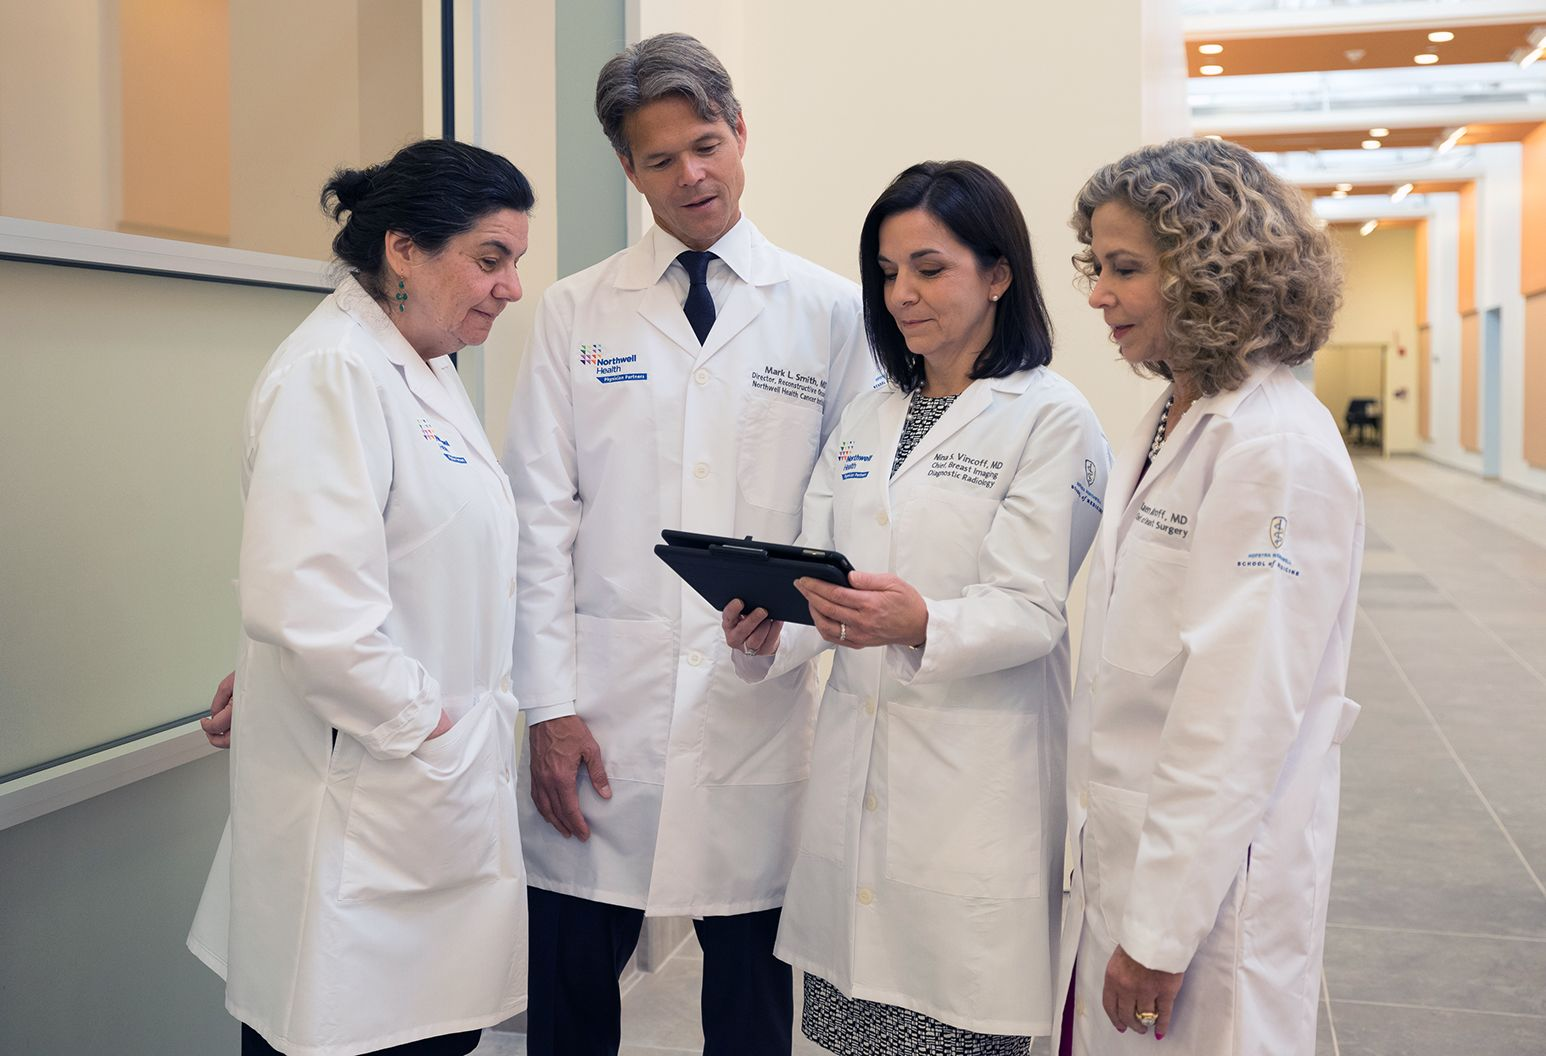 Northwell Health radiologists and clinicians consult on a case